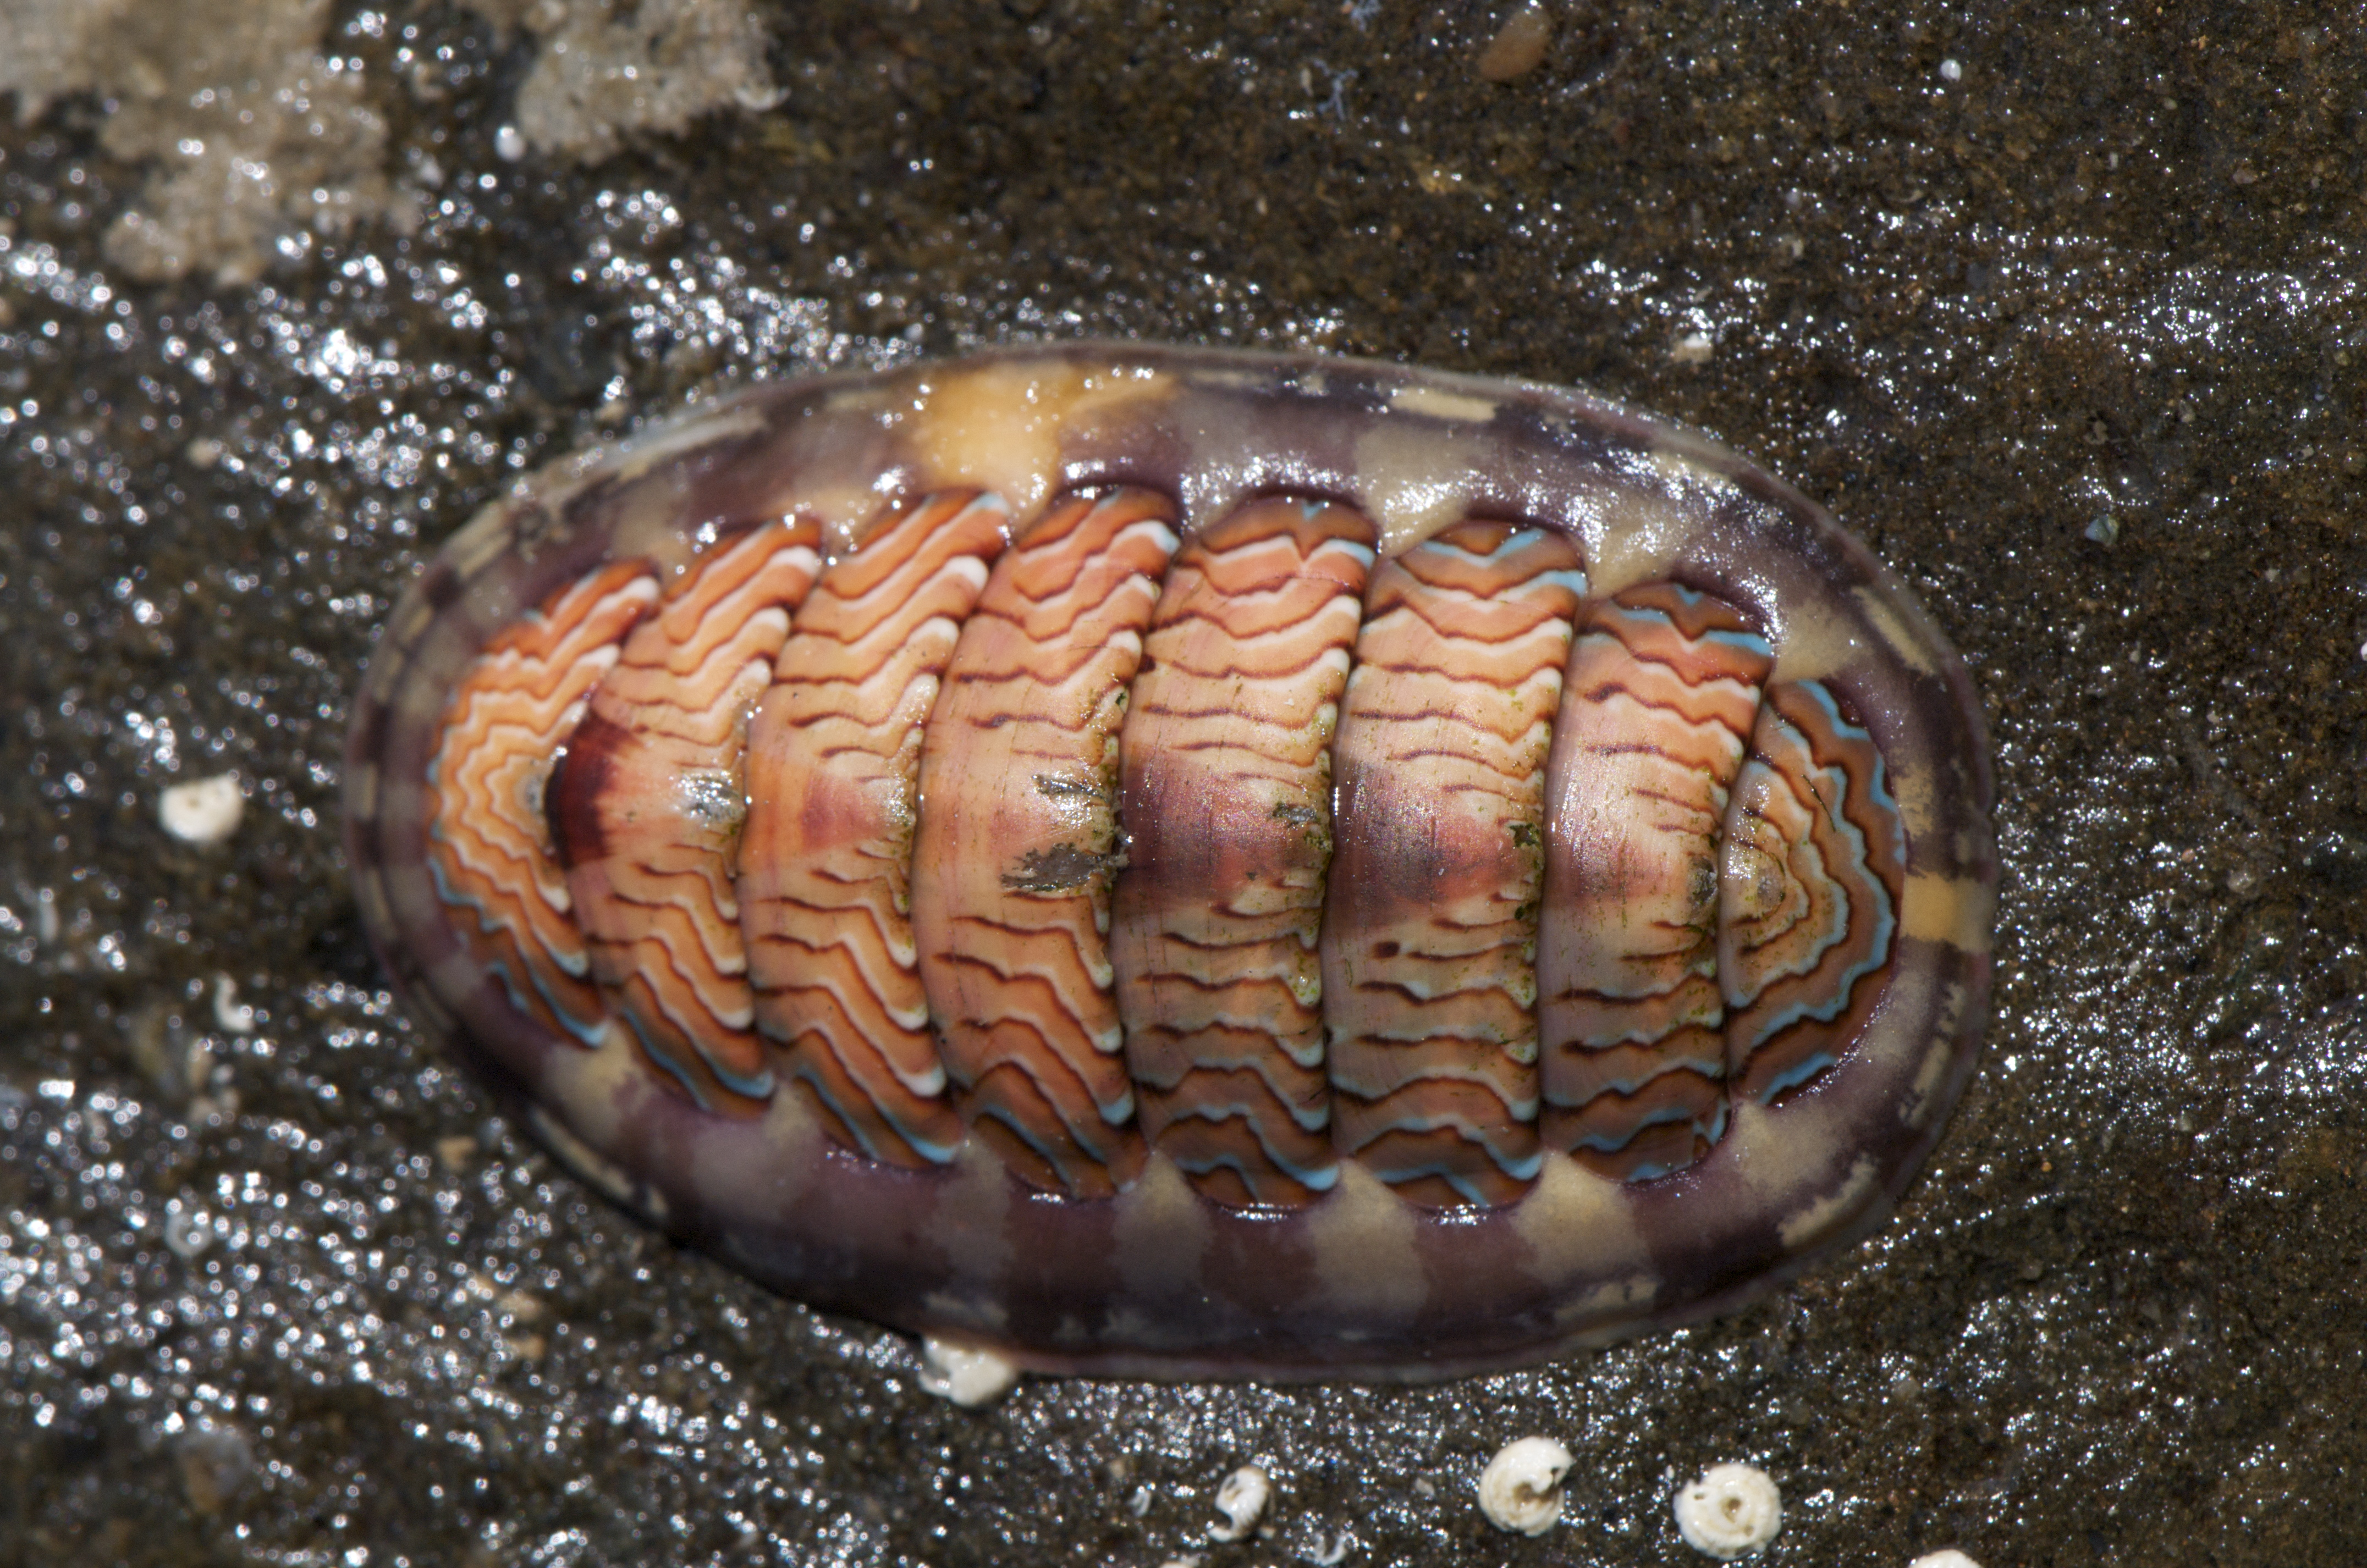 Still Pictures Are All Very Fine And >> Lined Chiton (Tonicella lineata) | I think this is one of th… | Flickr - Photo Sharing!